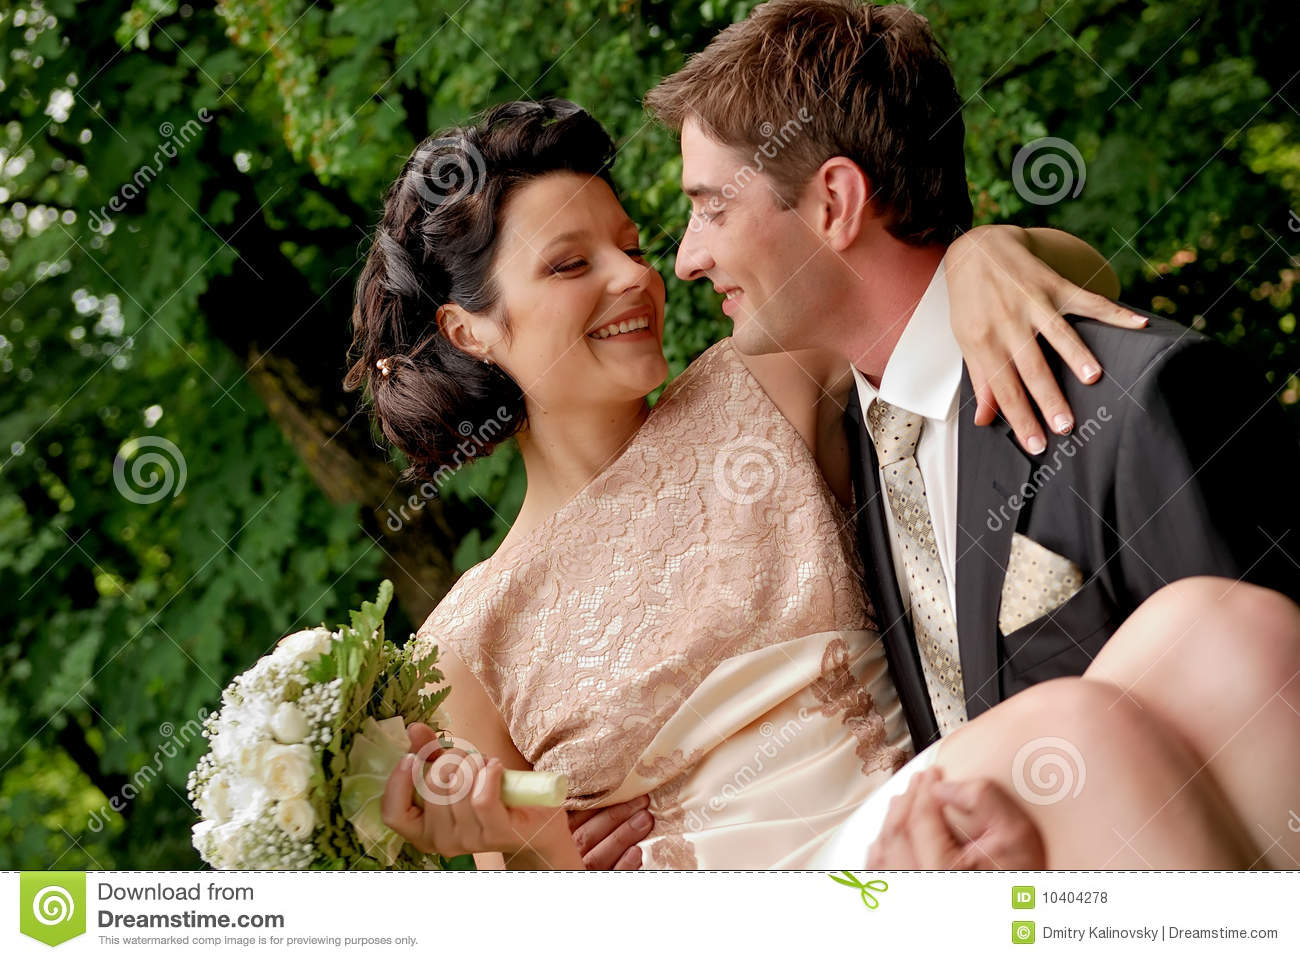 8 Non Religious Wedding Readings For Couples With Taste: Happy Smiling Wedding Couple Outdoors. Royalty Free Stock